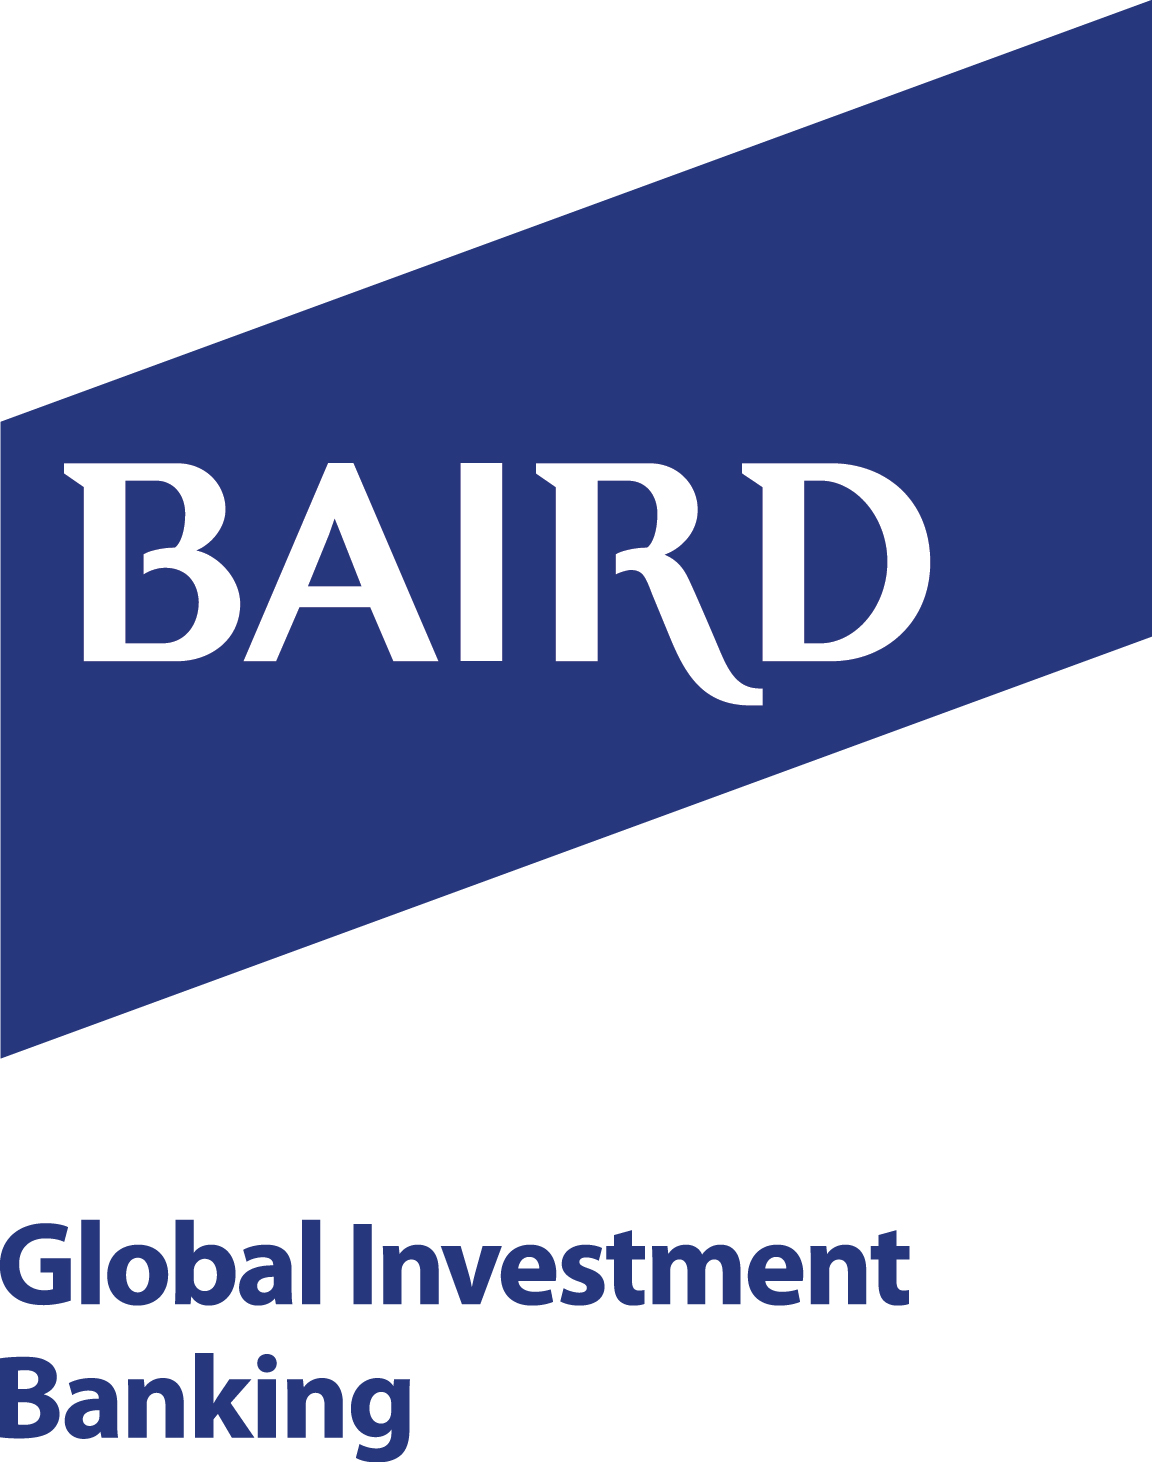 Baird Investment Bank